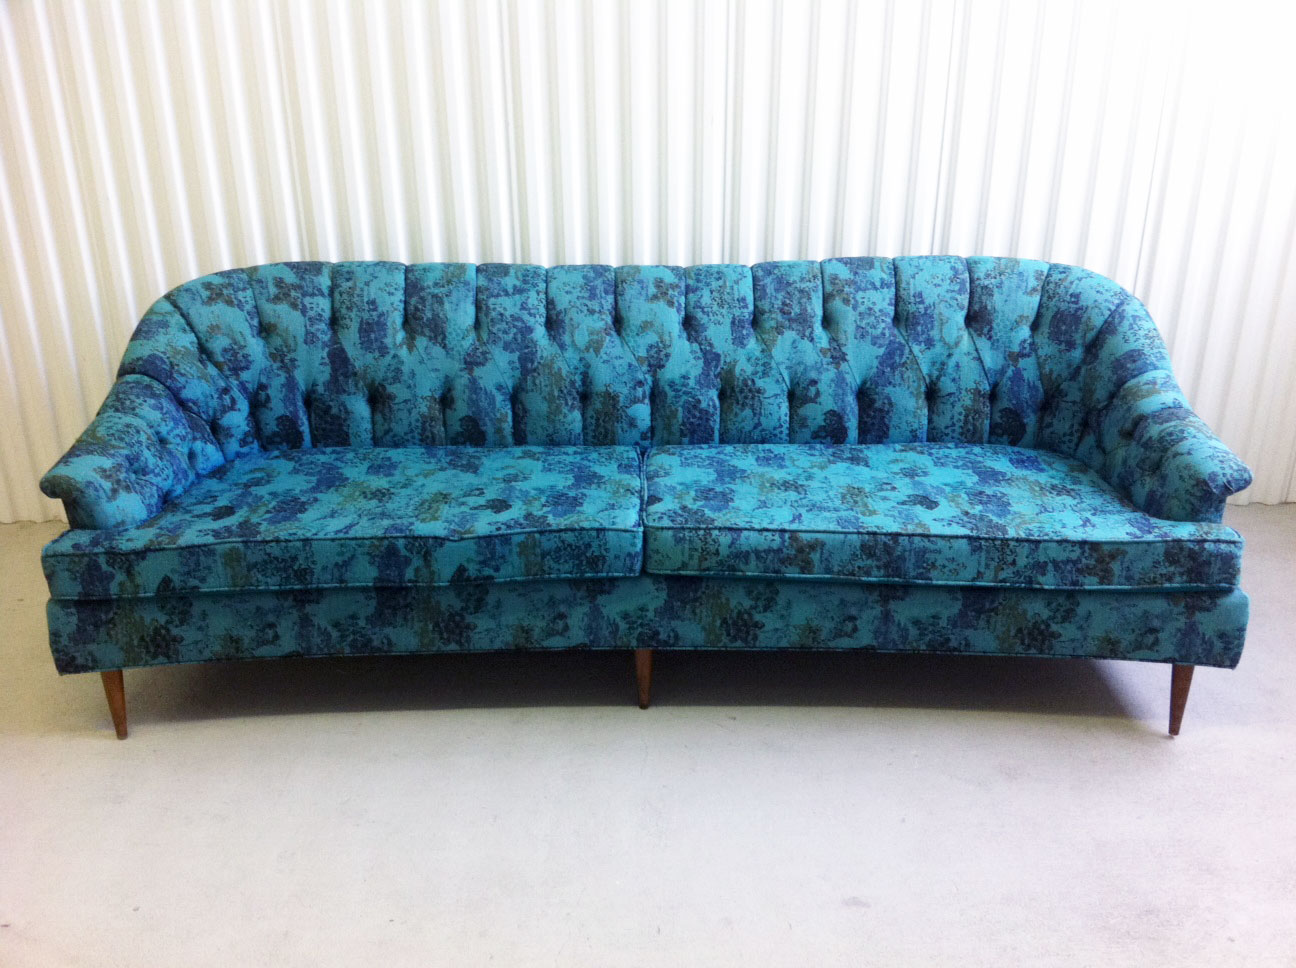 anthropologie sofa textured linen slipcover junk2funk mid century style blue and green